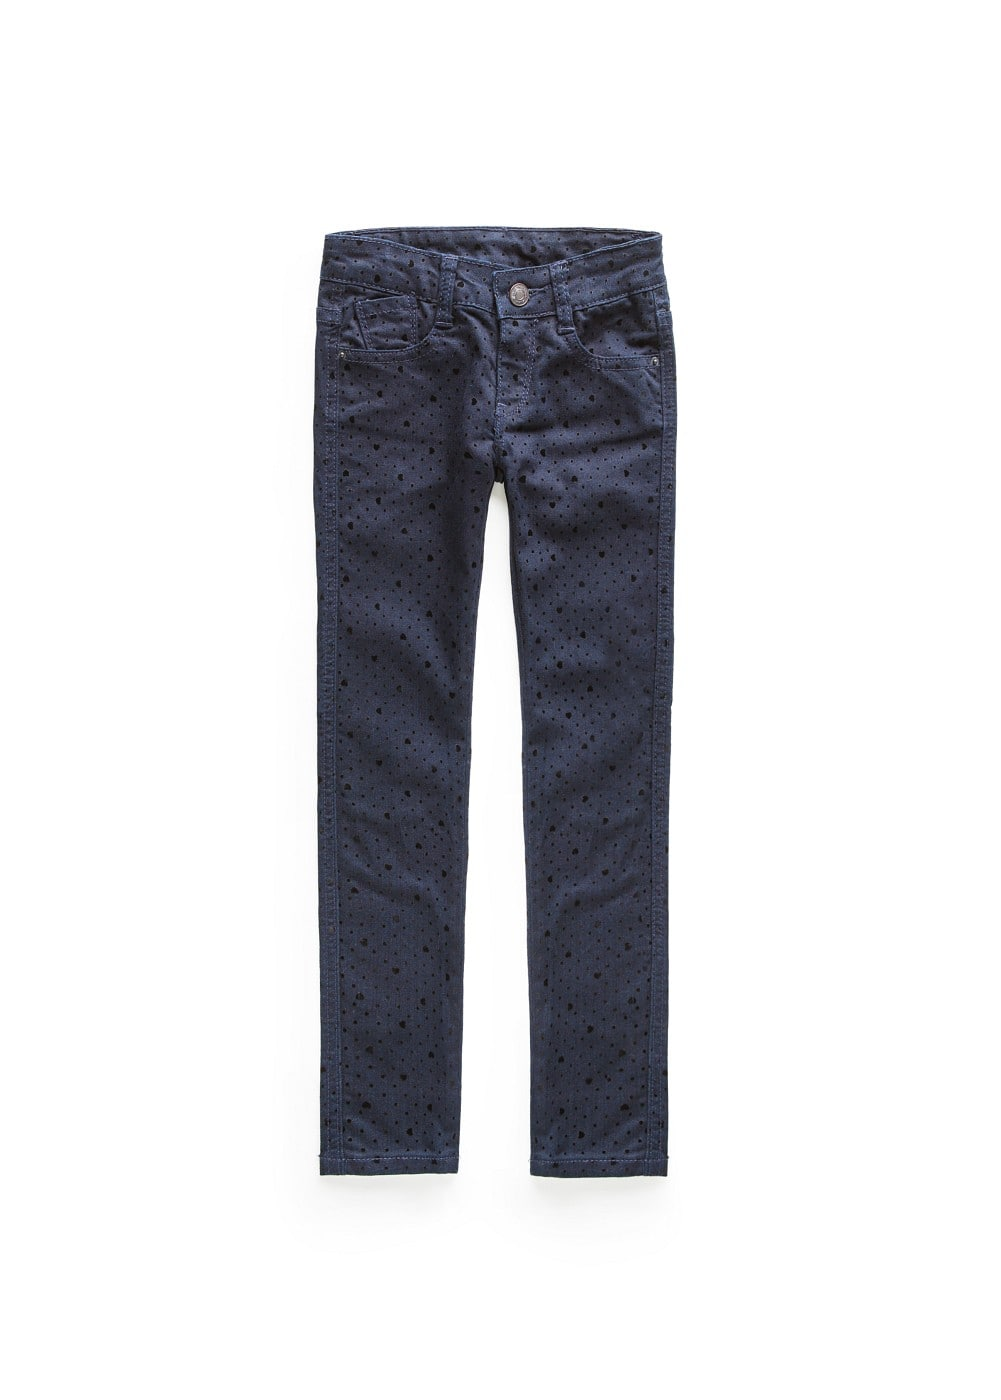 Polka-dot and heart flock jeans